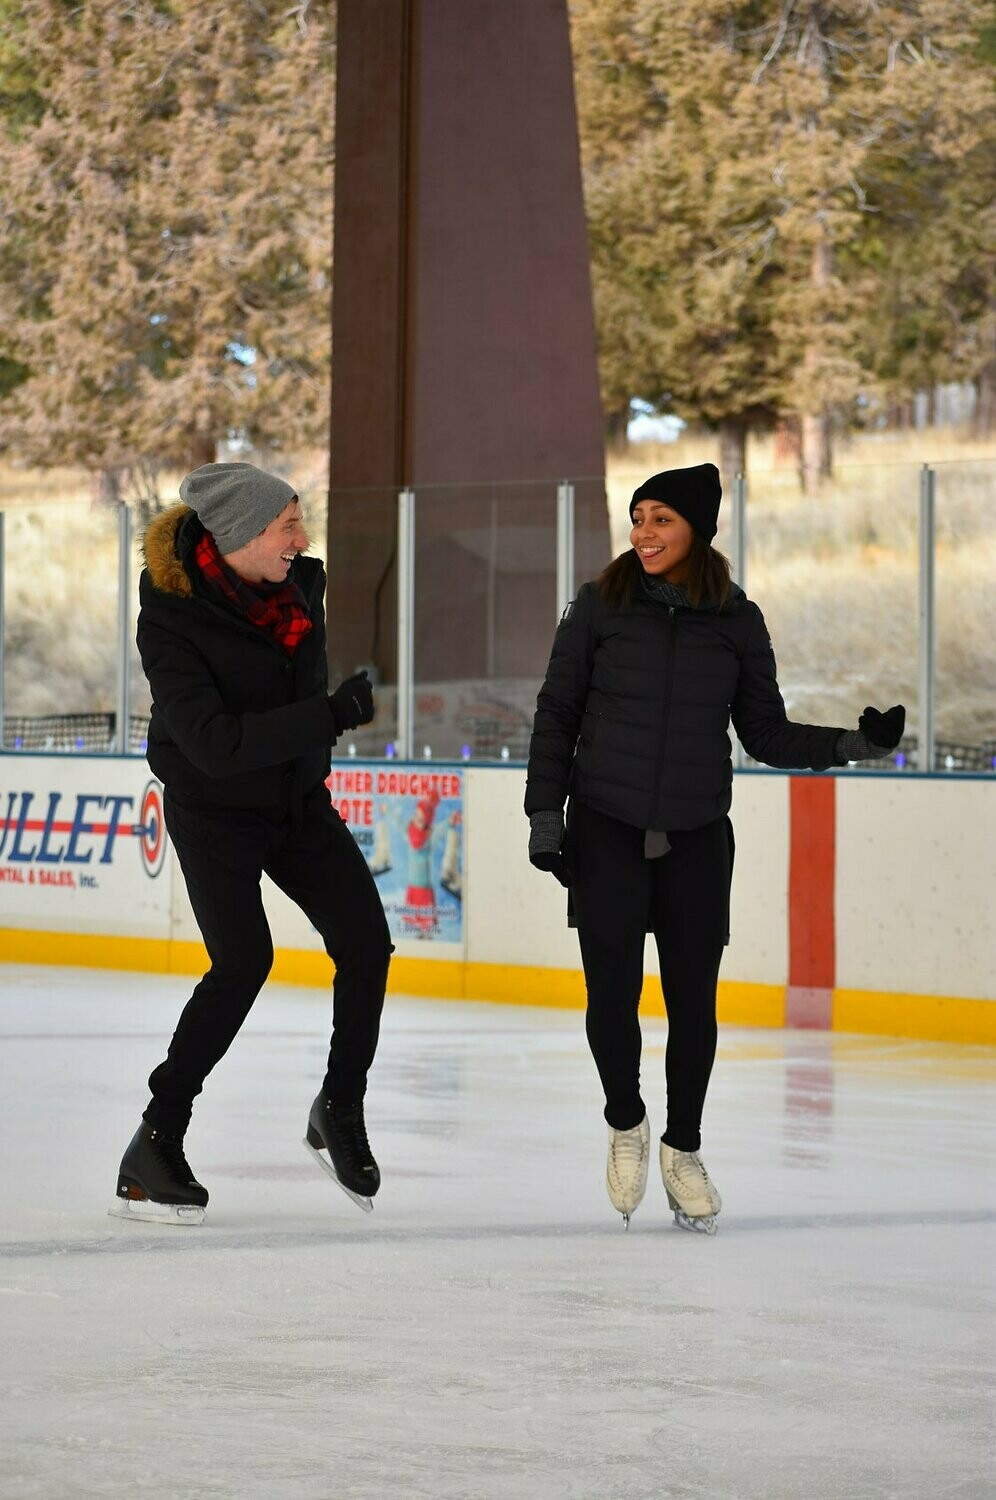 January 22 Adult Open Skate 1:30-3pm